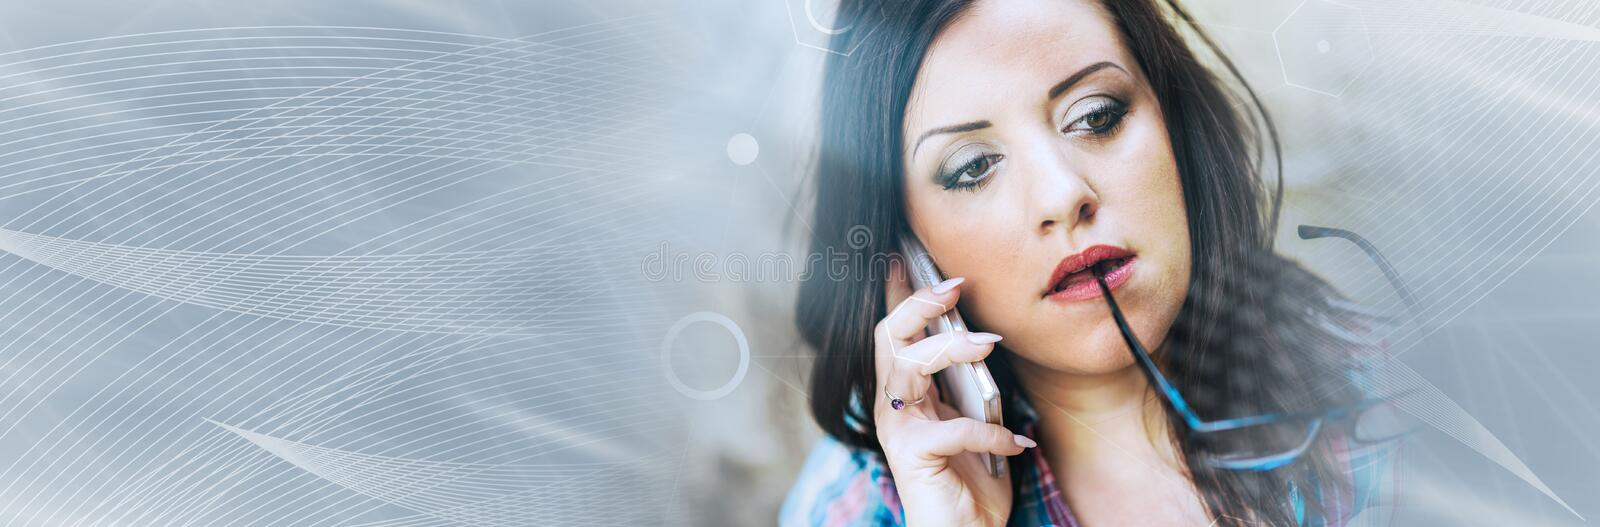 Portrait of beautiful young woman using phone, light effect. panoramic banner royalty free stock images